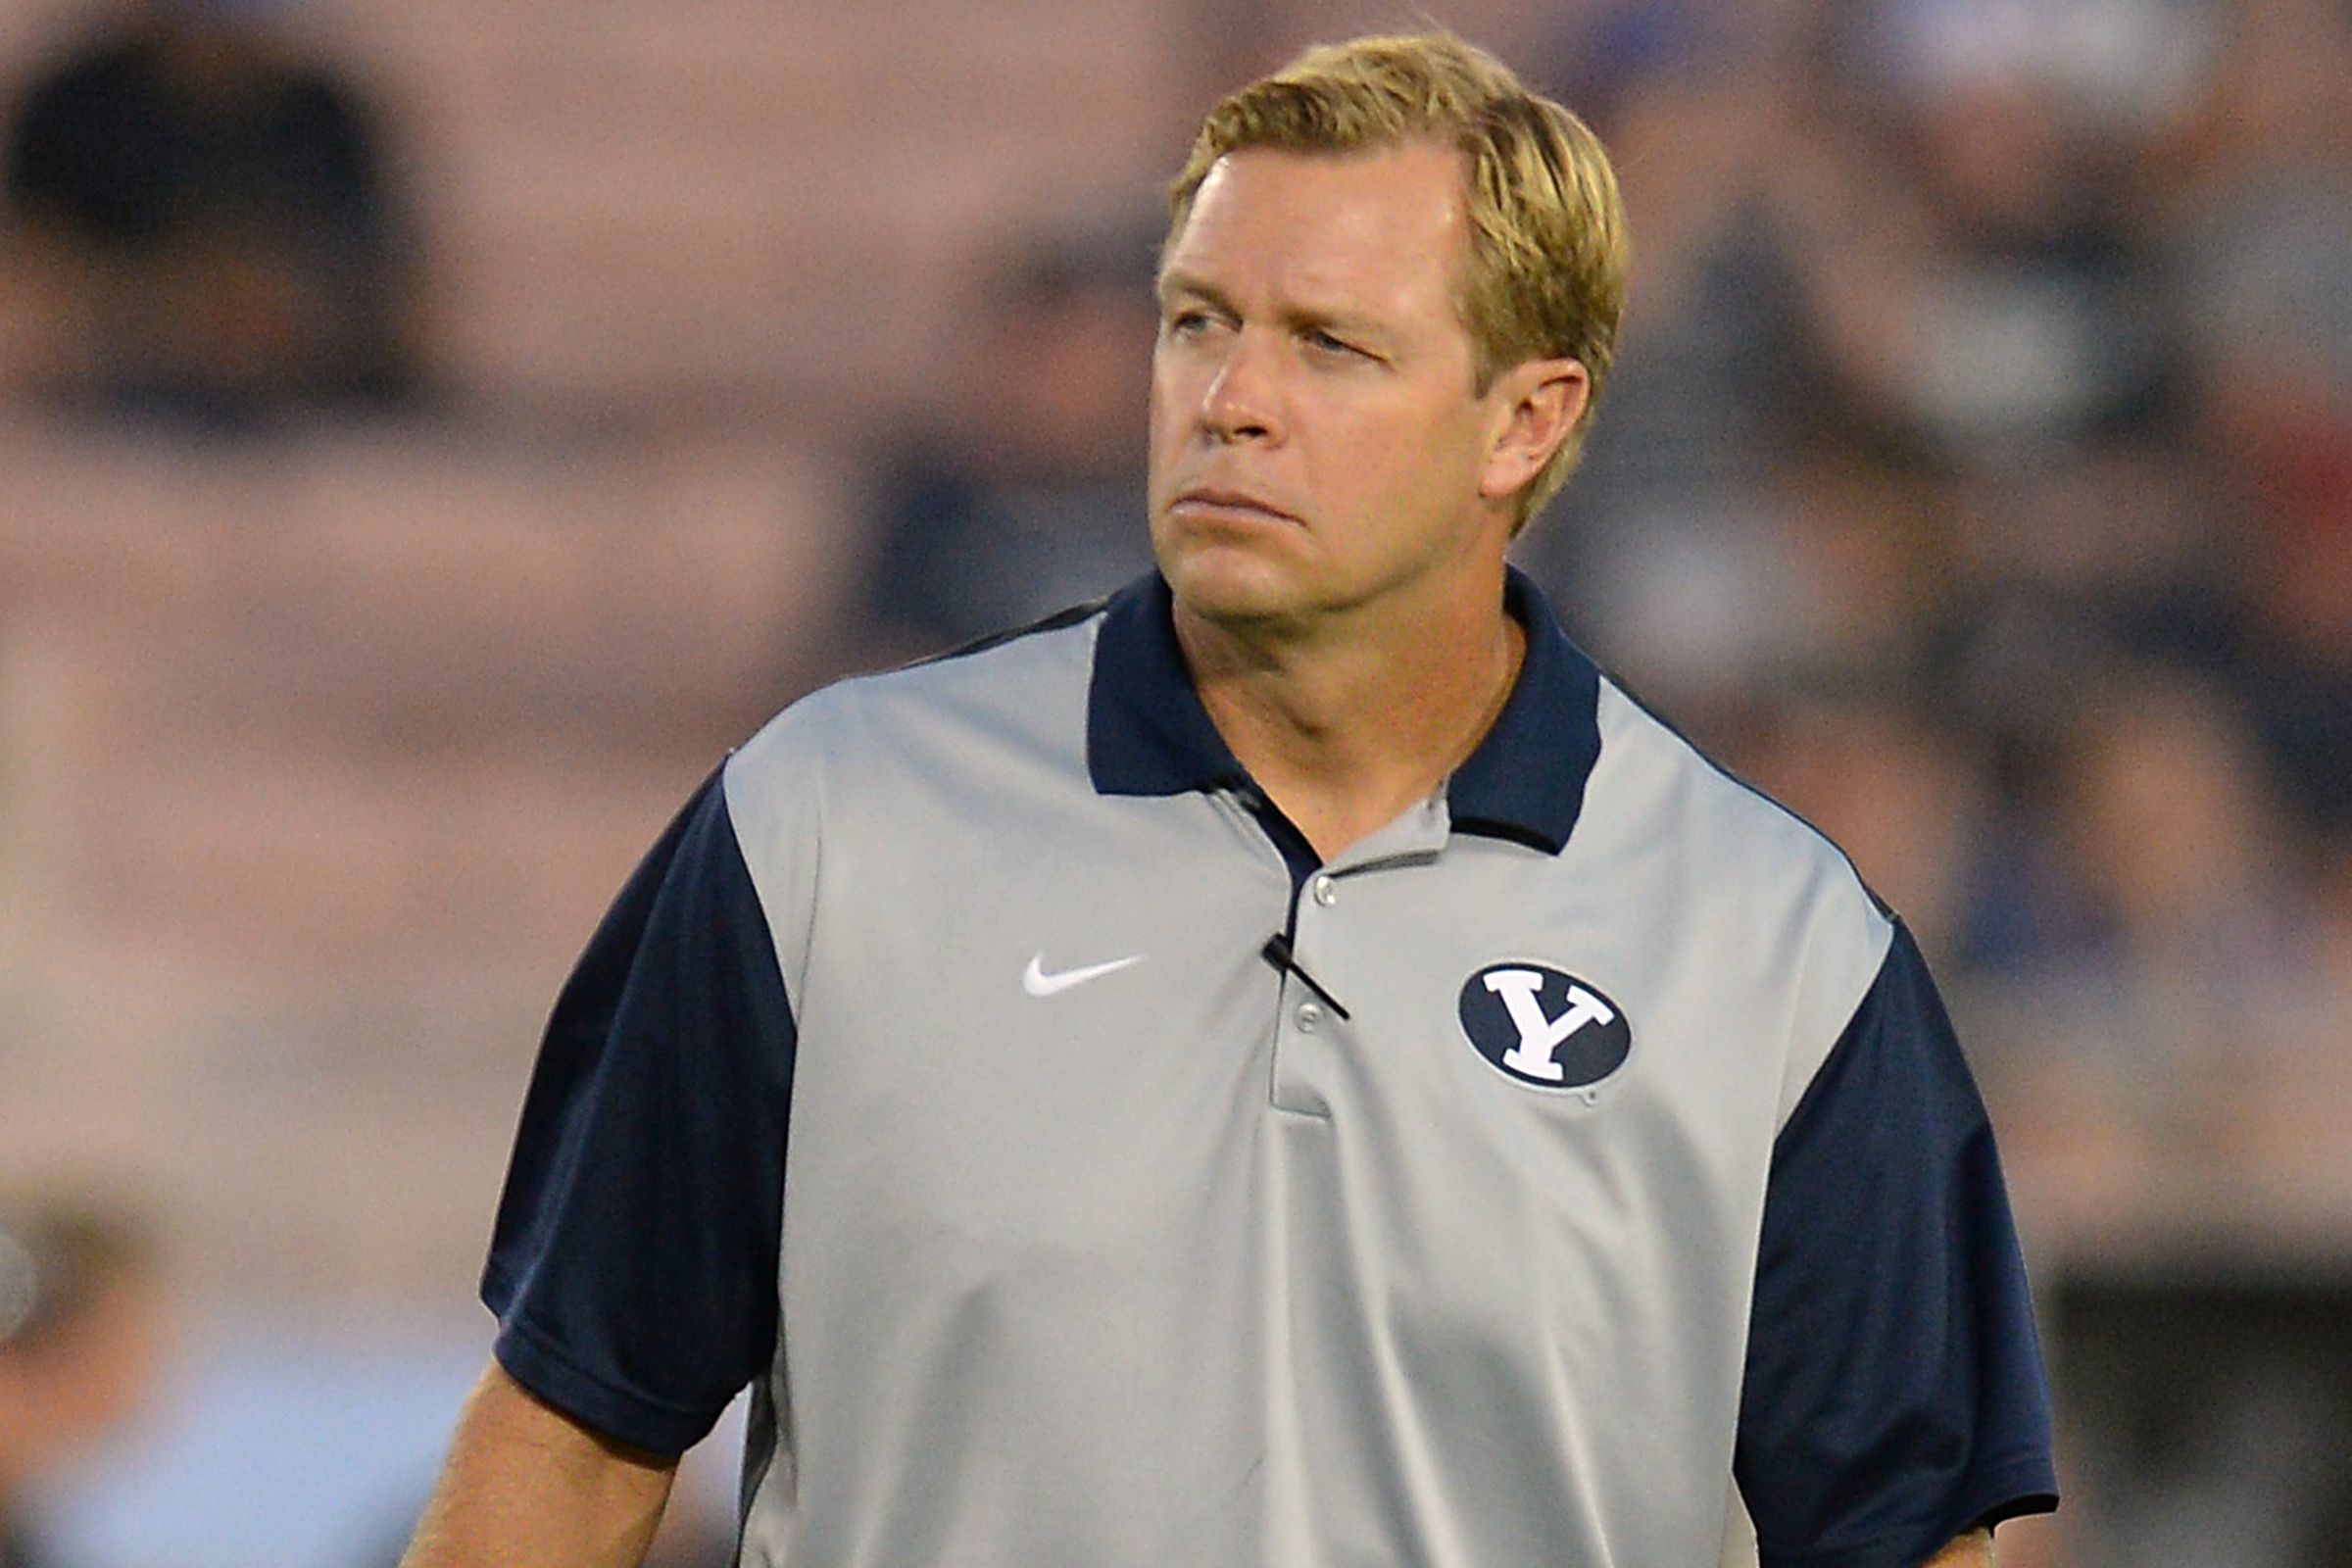 Virginia hires football coach Bronco Mendenhall away from BYU